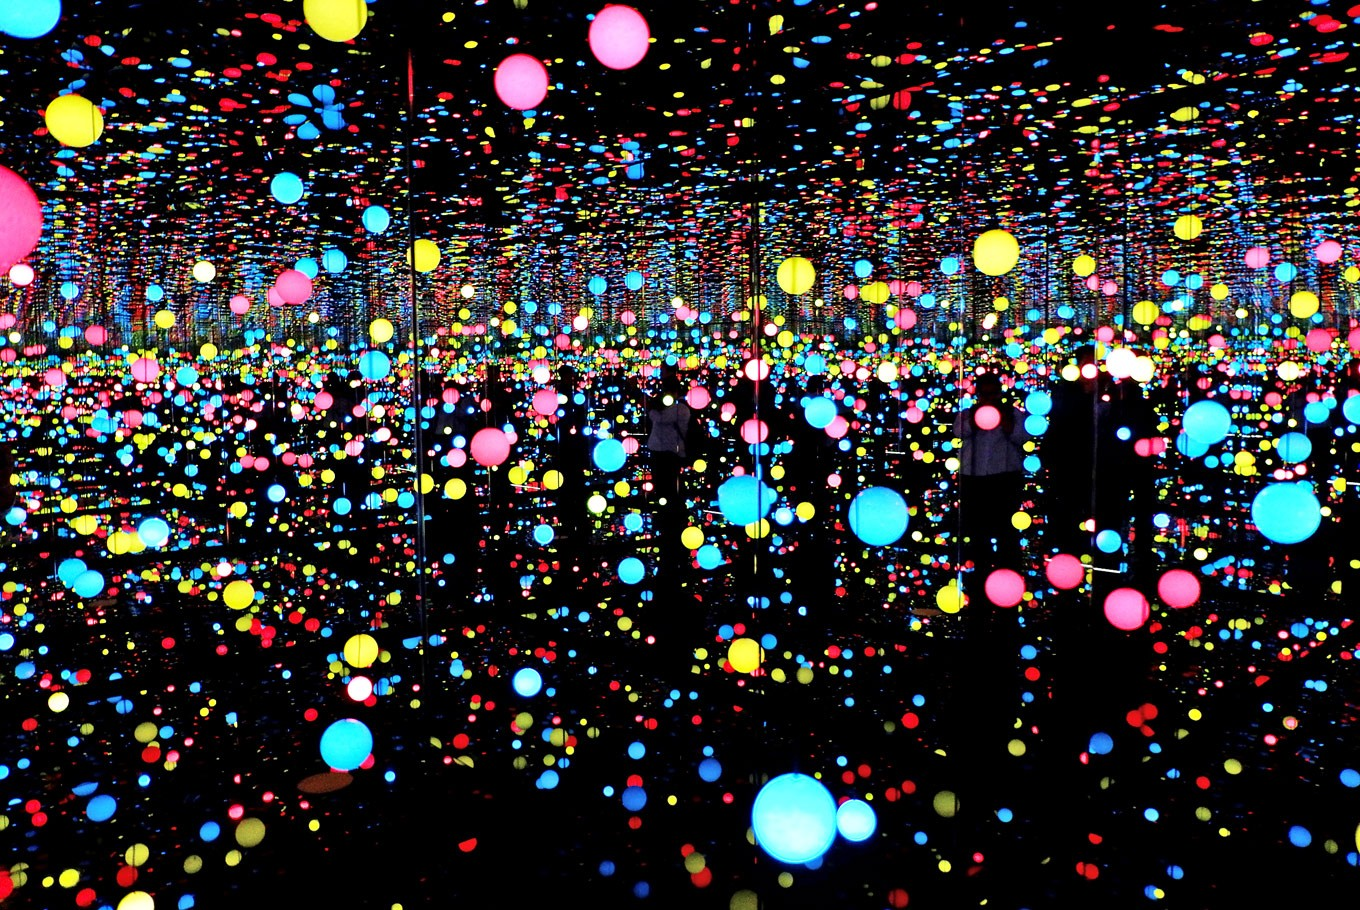 Museum MACAN to host Yayoi Kusama exhibition in May